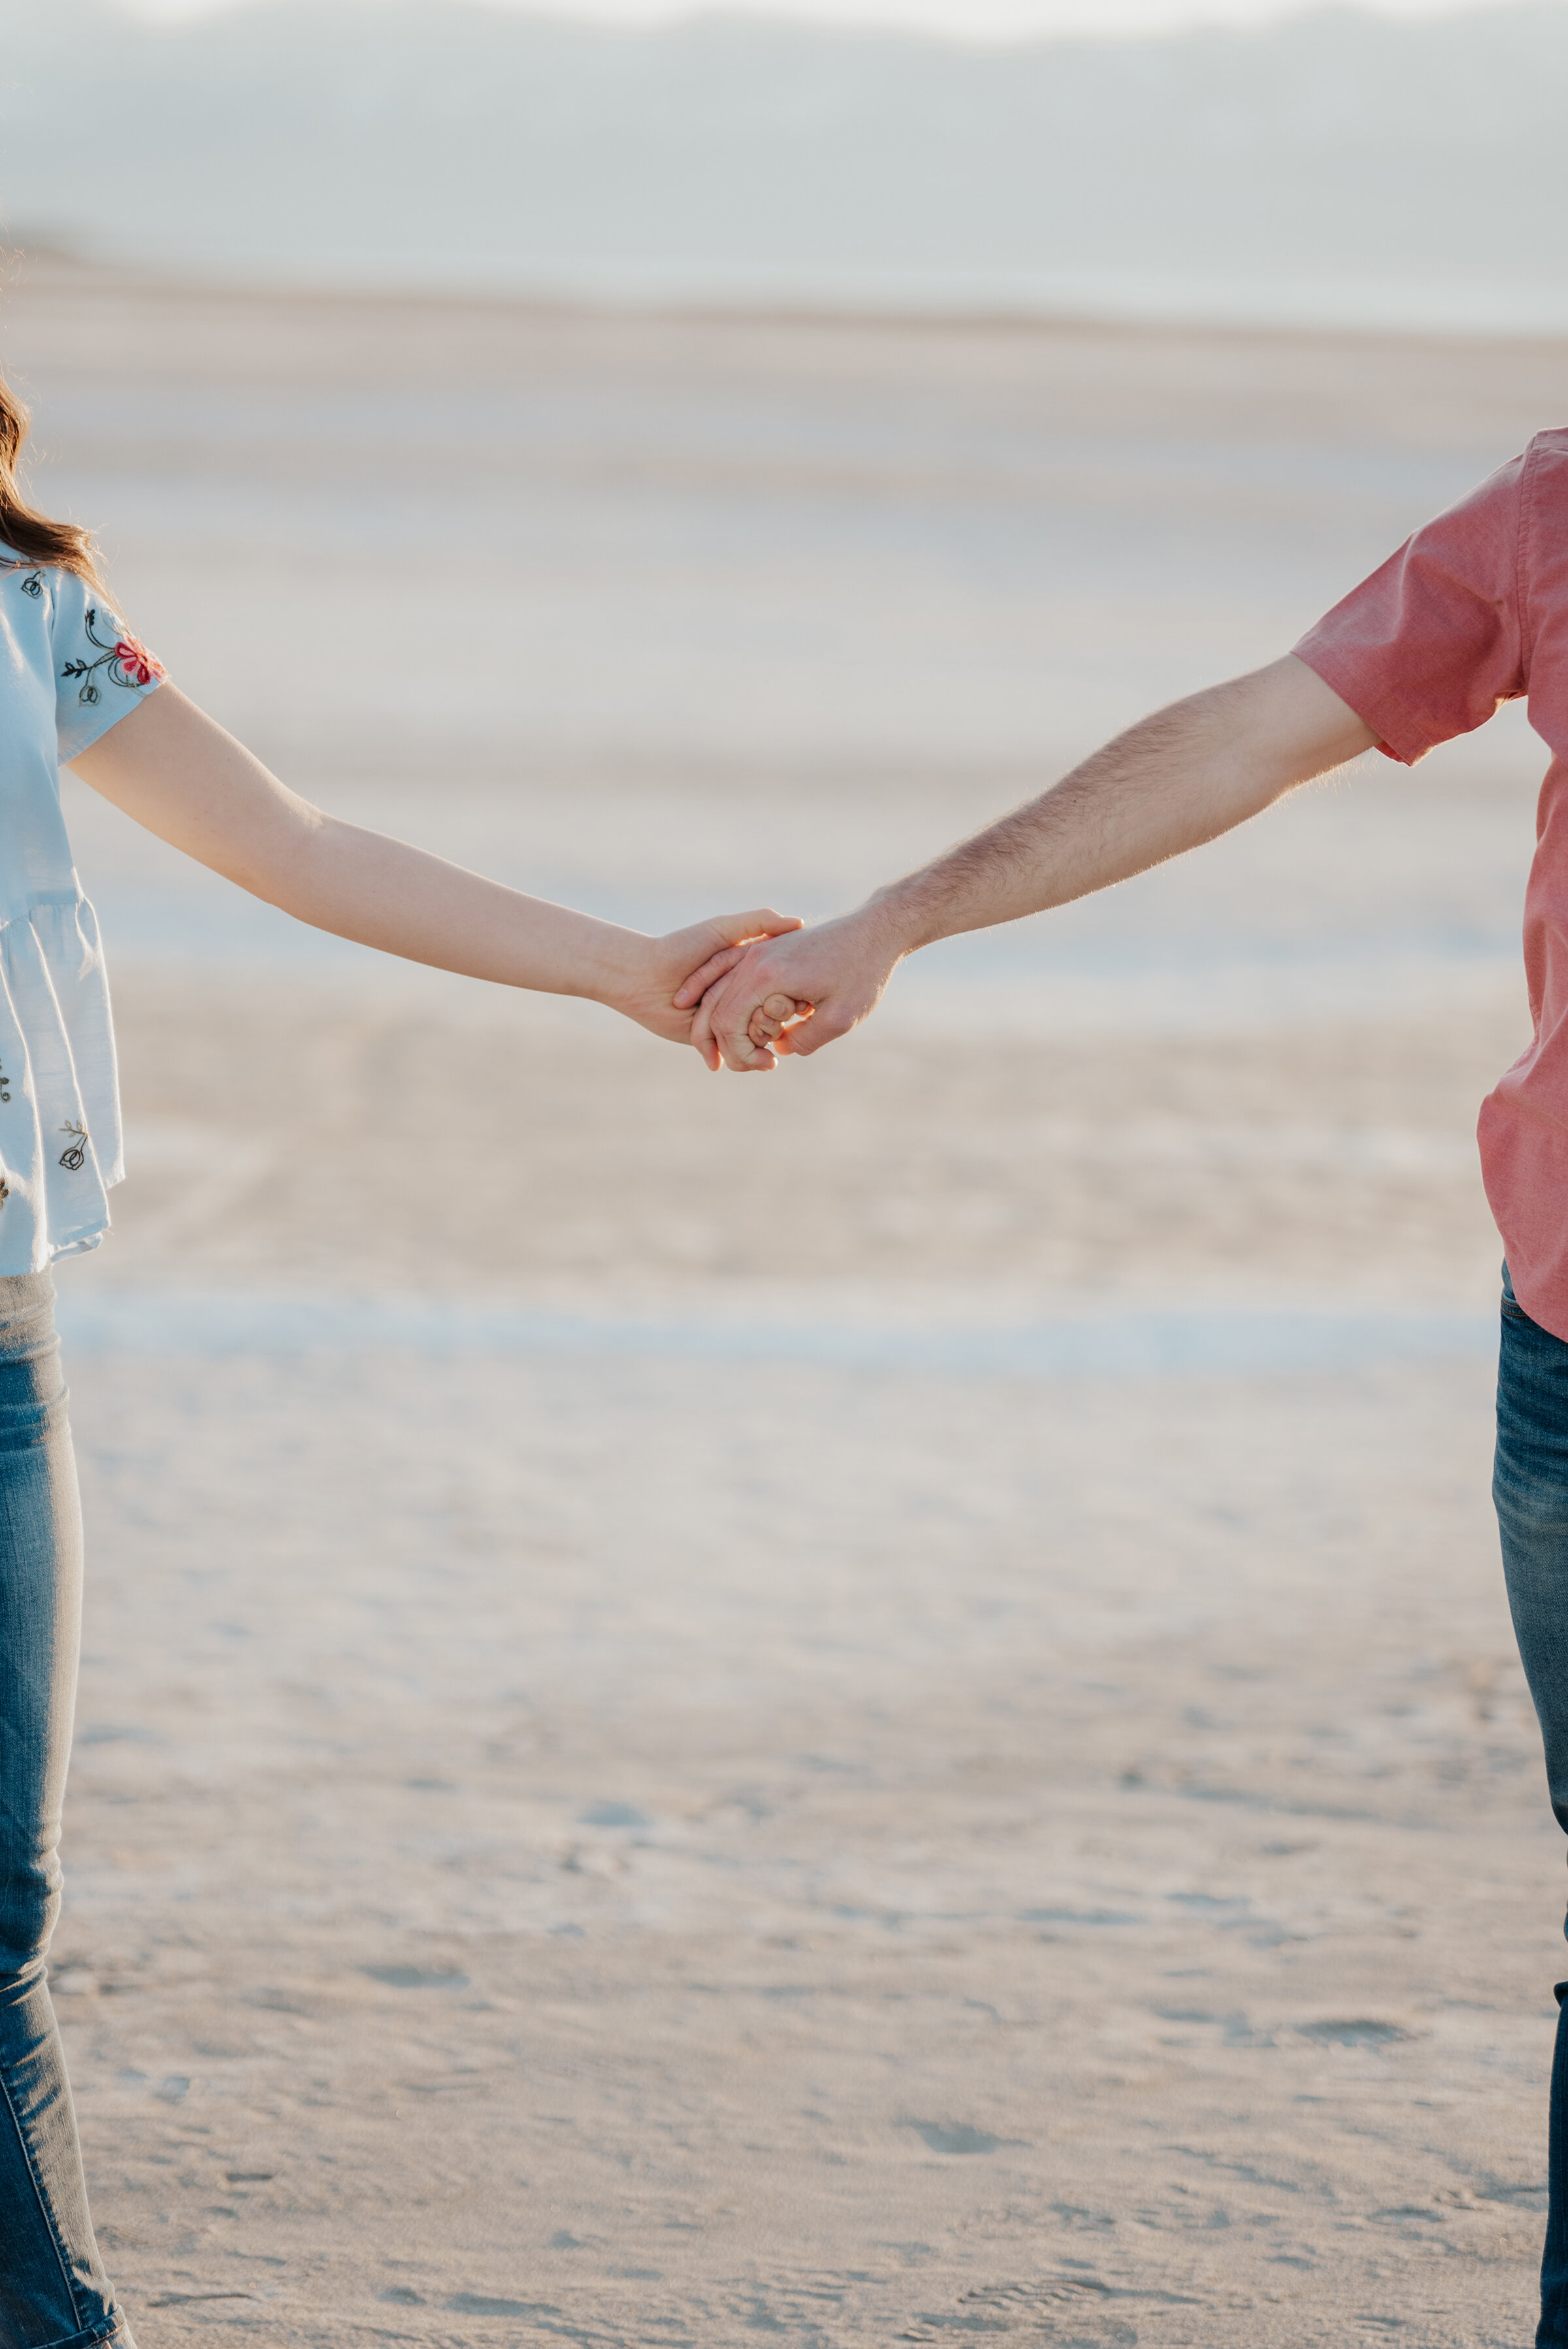 Adorable couple holds hand in an abstract engagement photo of them holding hands on the Salt Flats in Utah. Holding hands photo ideas romantic engagement photos inspiration salt flats in utah magna utah salt lake engagement photographer wedding photography best utah county wedding photographer #weddingphotography #saltflats #magnautah #engagements #photographer #engagementinspo #kristialysephotography #casualengagements